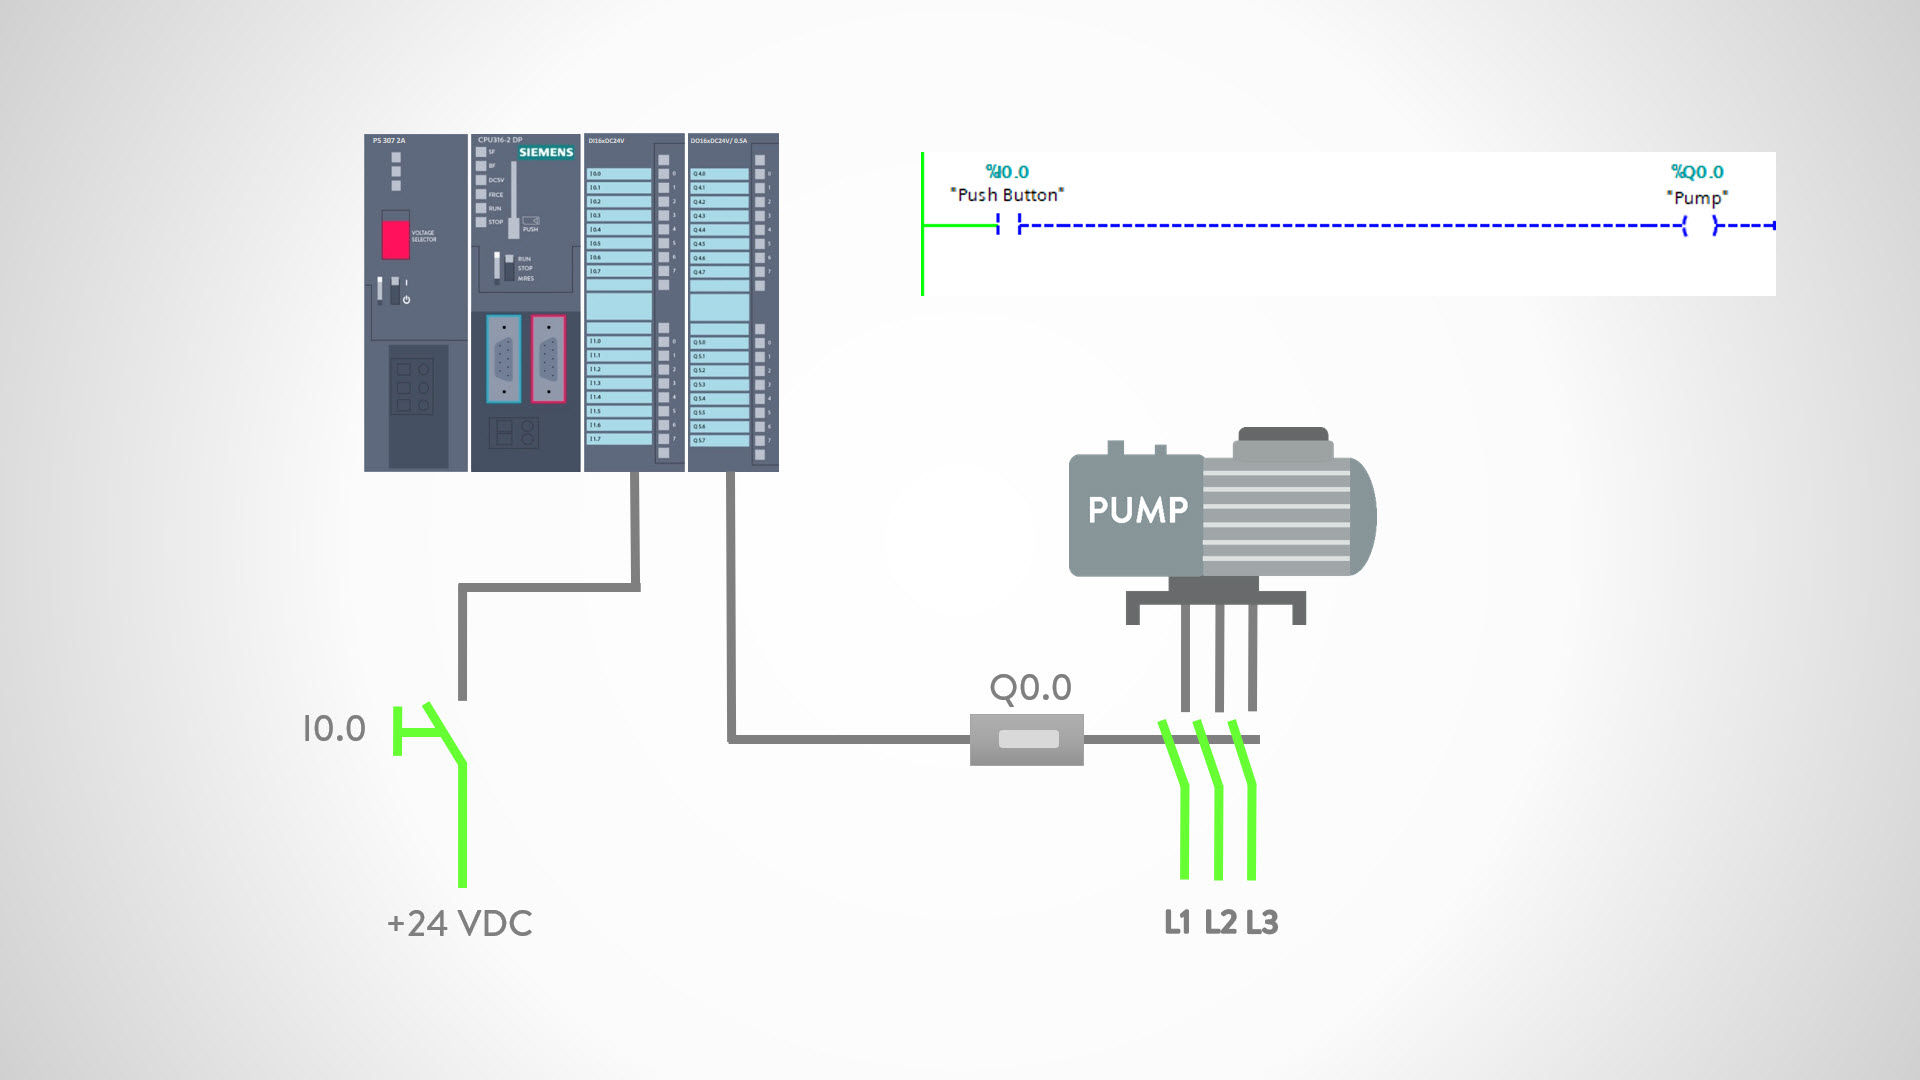 hight resolution of the pushbutton is connected to a plc input card and the logic program is written to sense the state of the pushbutton when the pushbutton is not pressed